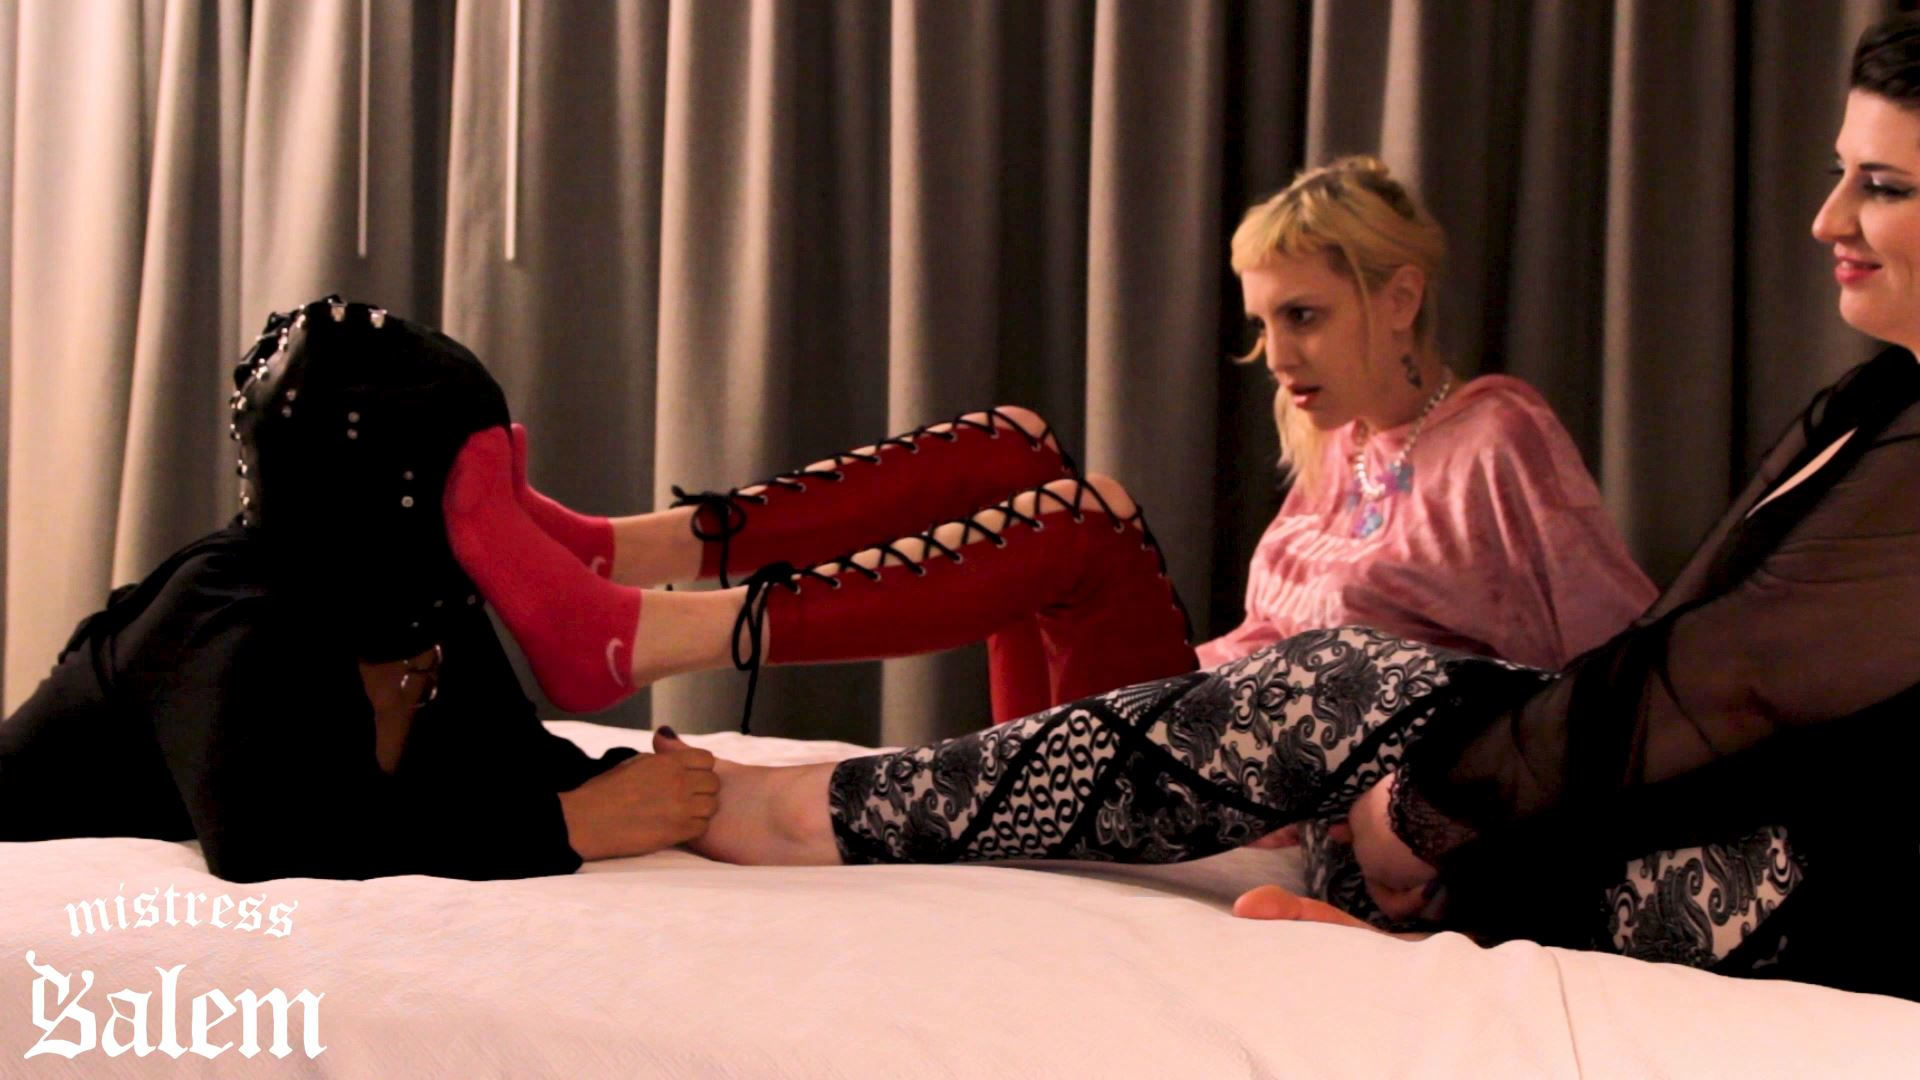 Mistress Salem In Scene: FULL LENGTH FOOT SLAVE TRAINING LESSON - MISTERSS SALEM - FULL HD/1080p/MP4